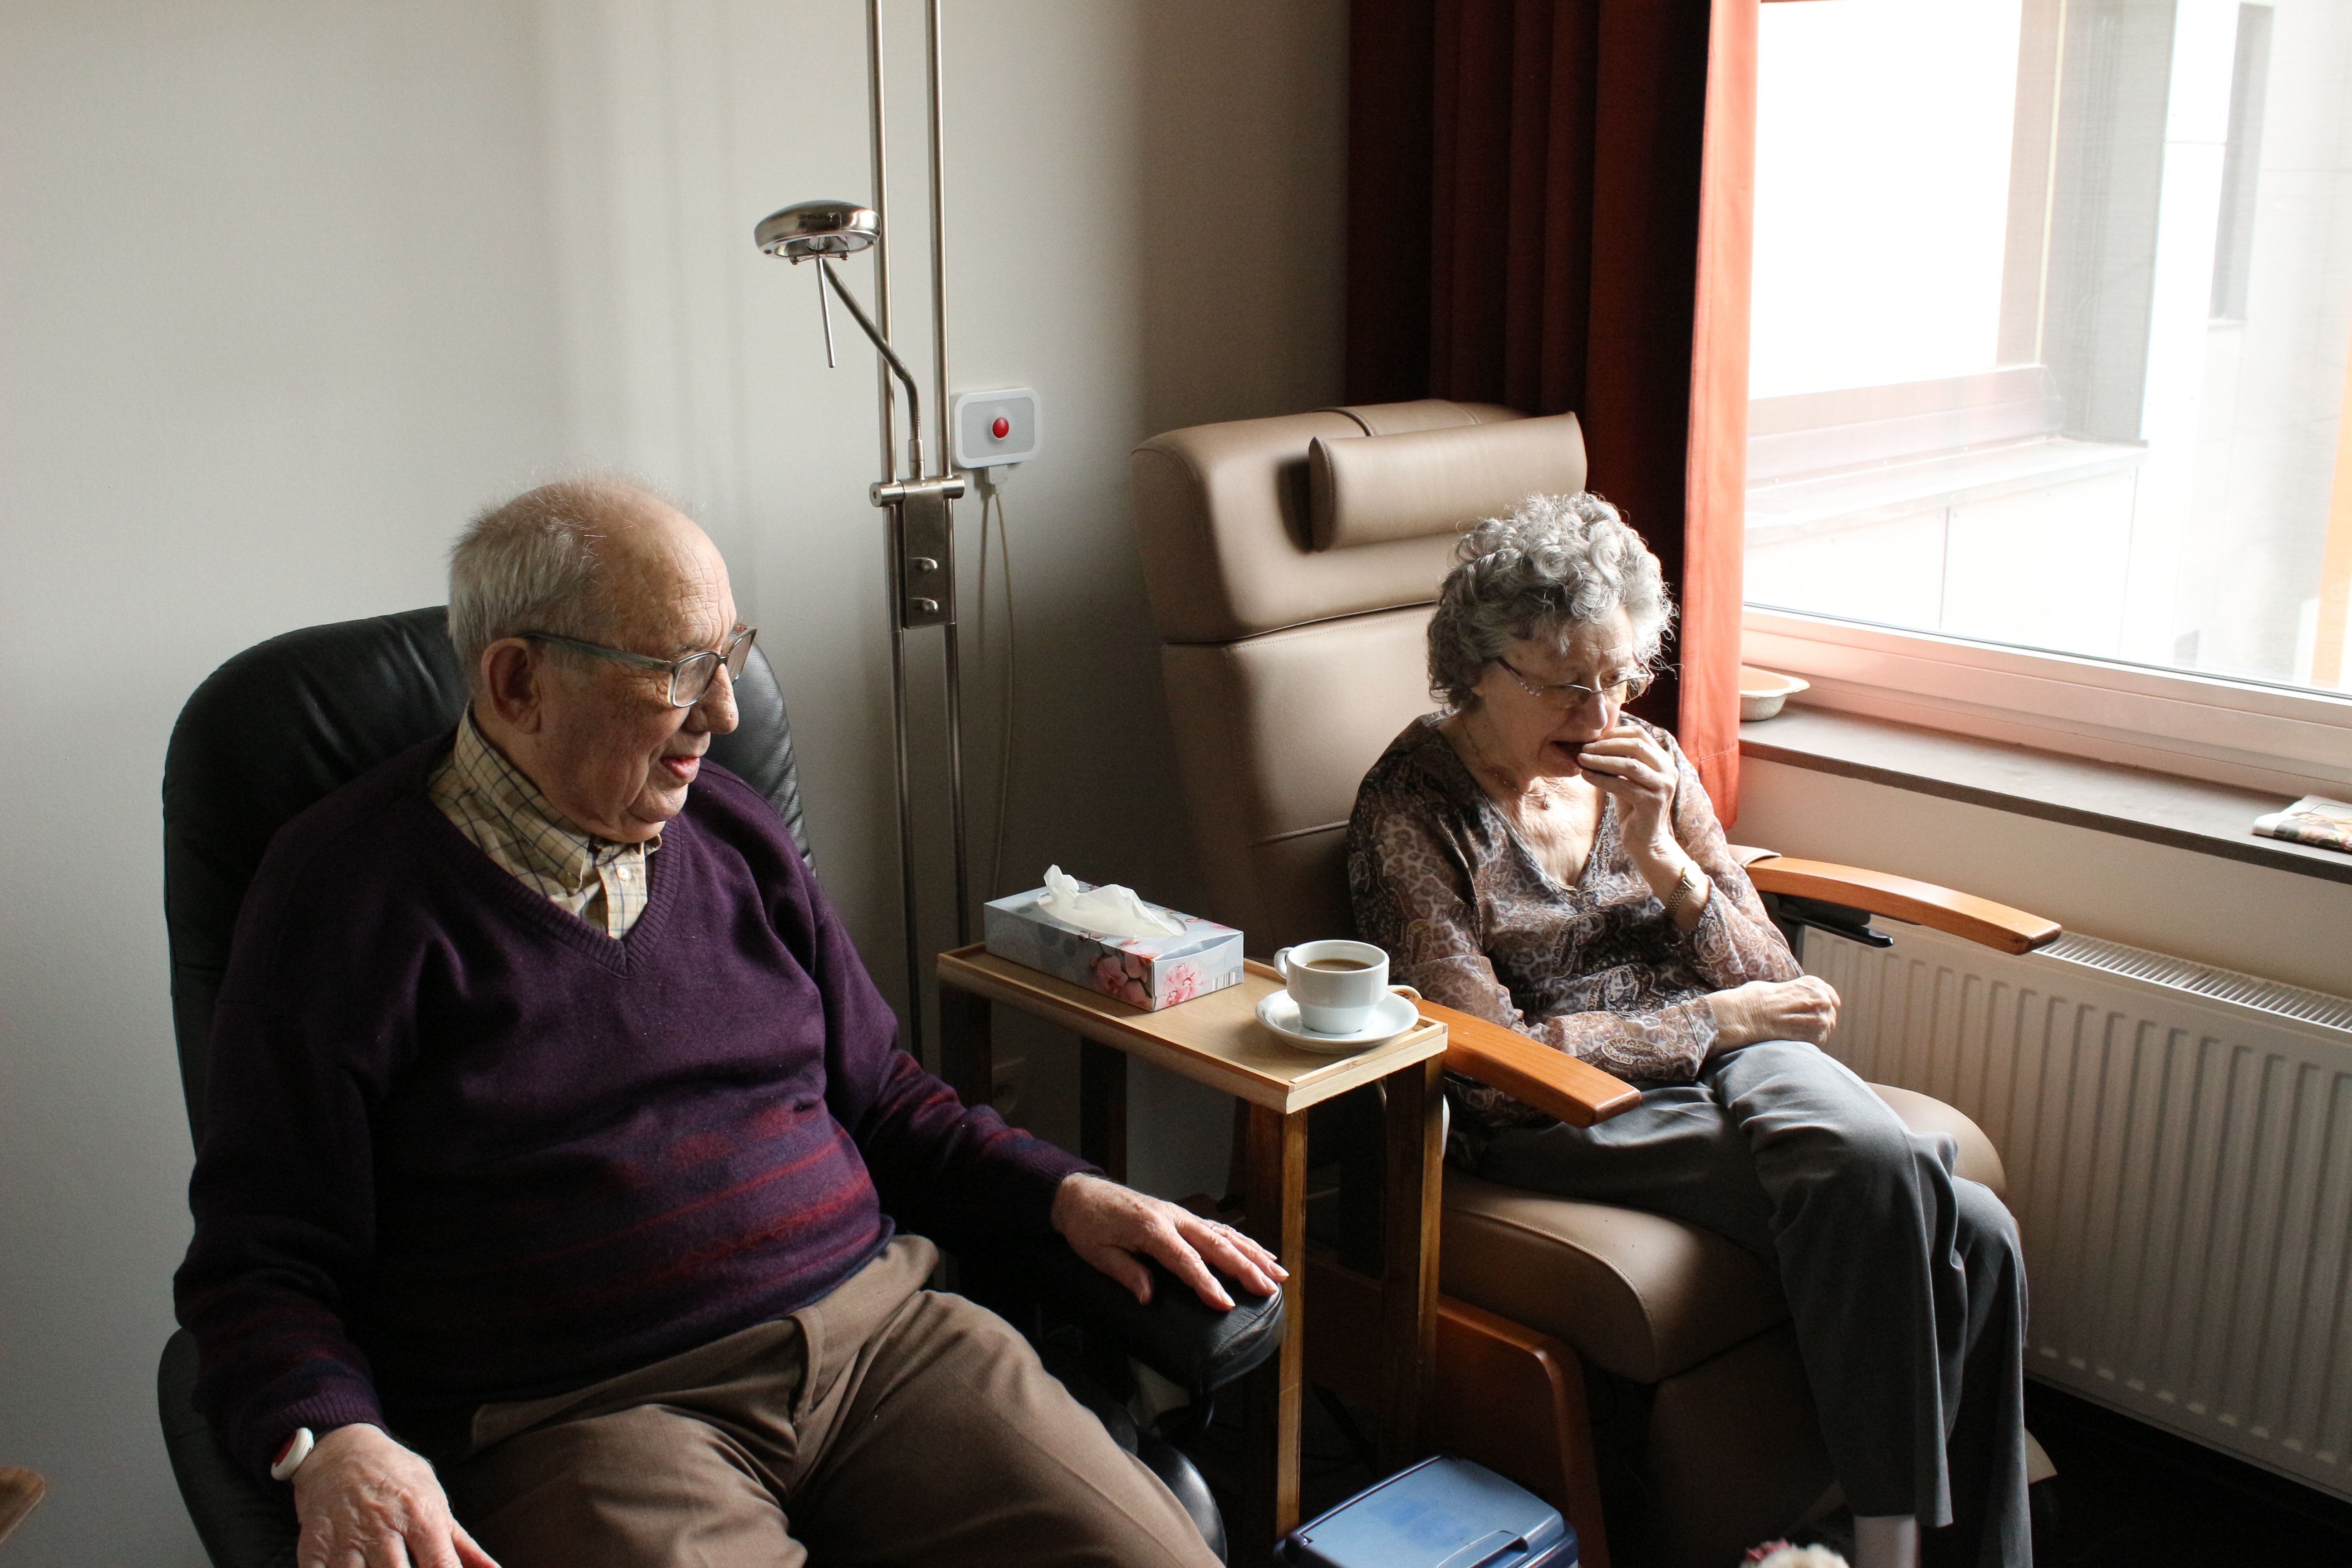 elderly man and woman sitting together reading